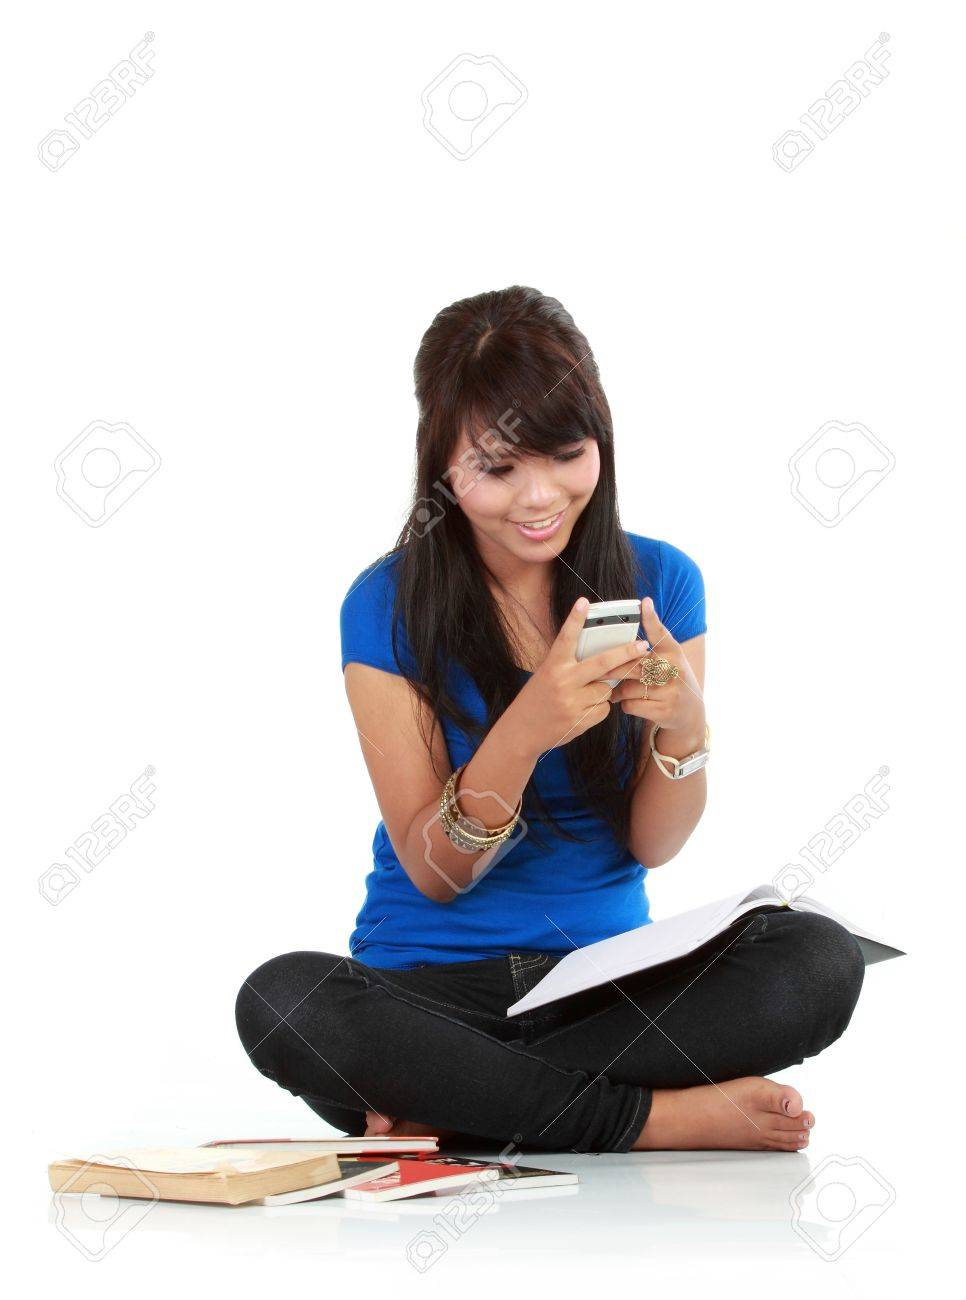 Cute Girl Holding handphone with isolated bacground Stock Photo - 10761828